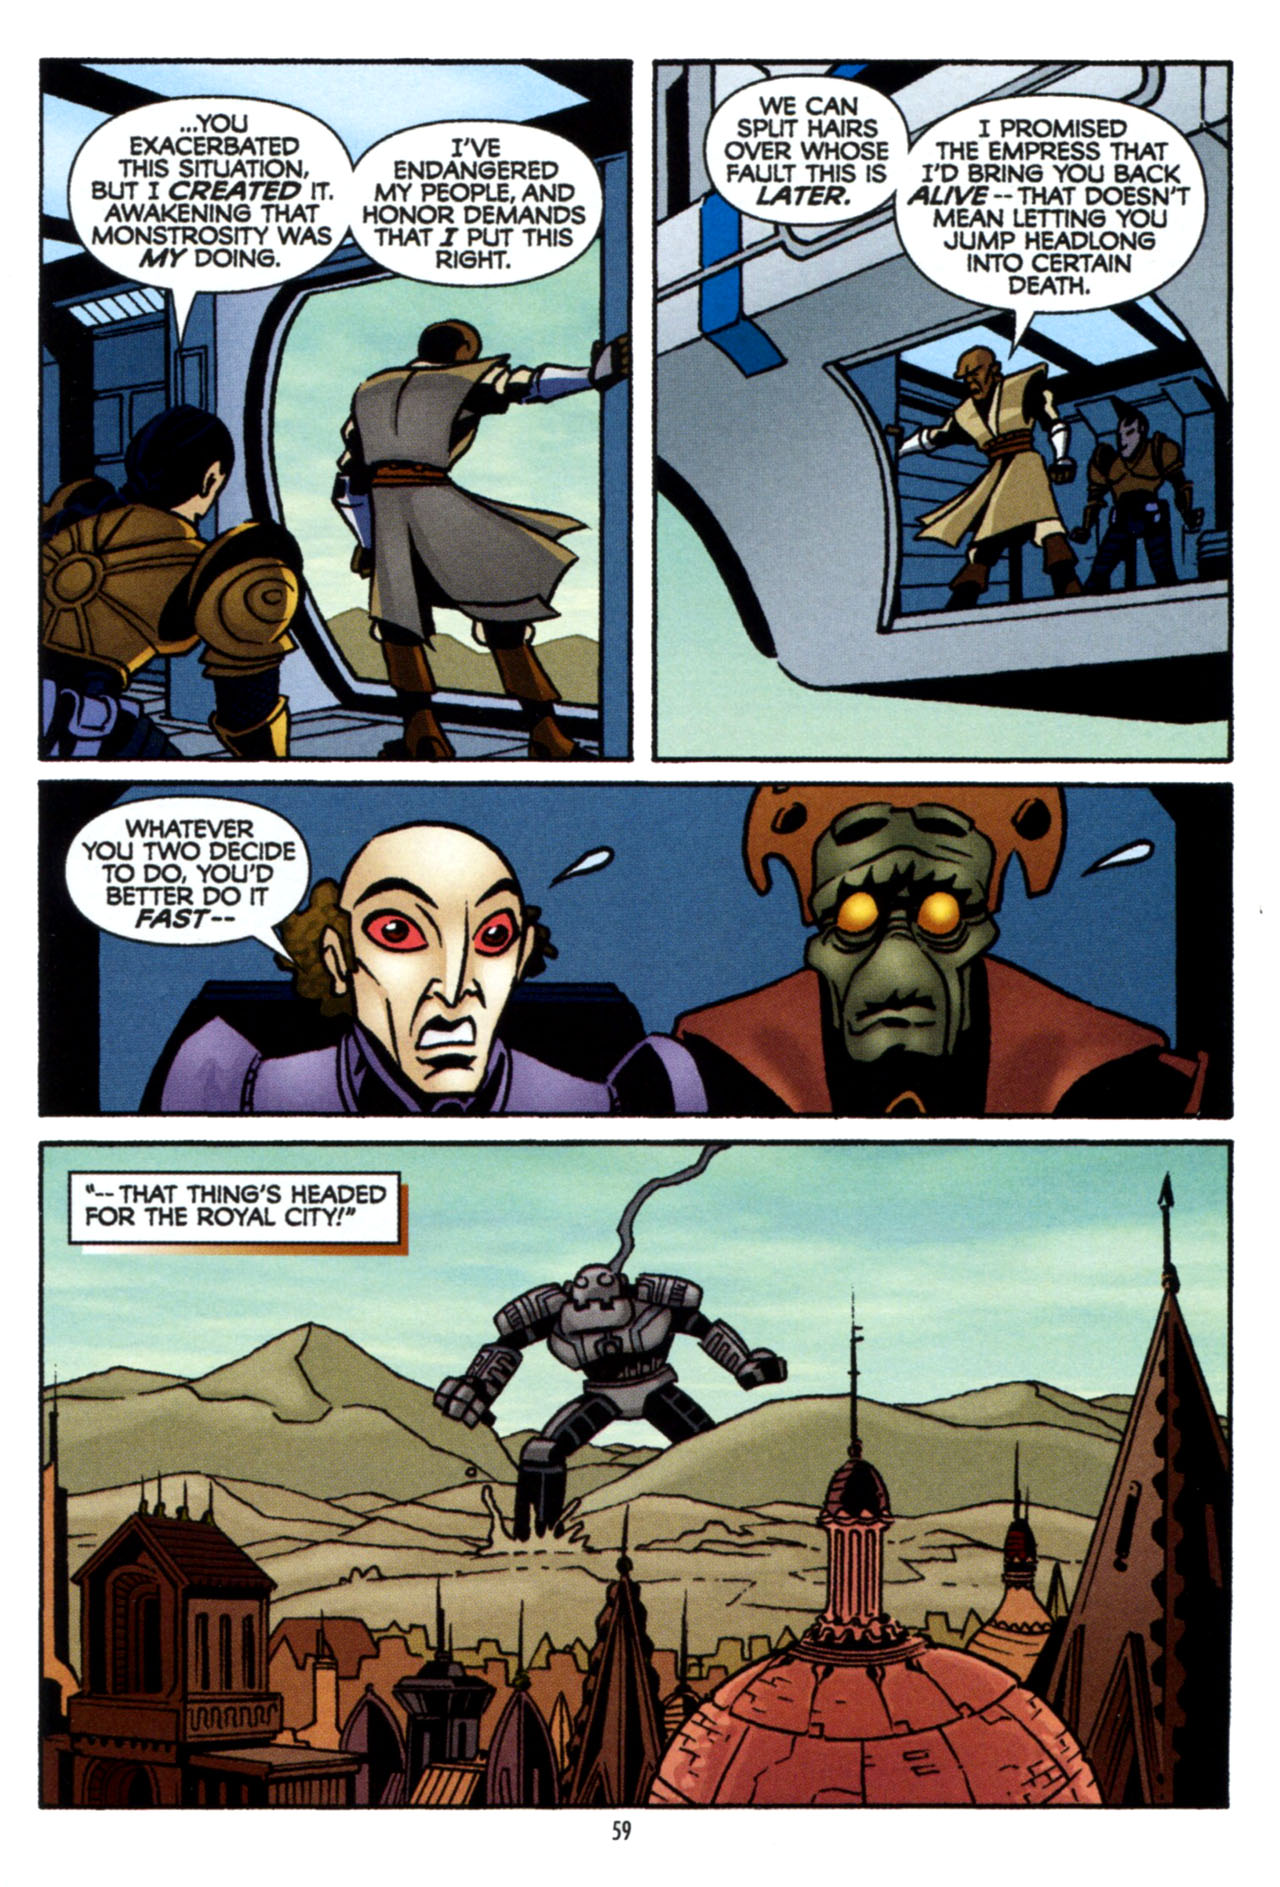 Read online Star Wars: The Clone Wars - The Colossus of Destiny comic -  Issue # Full - 59